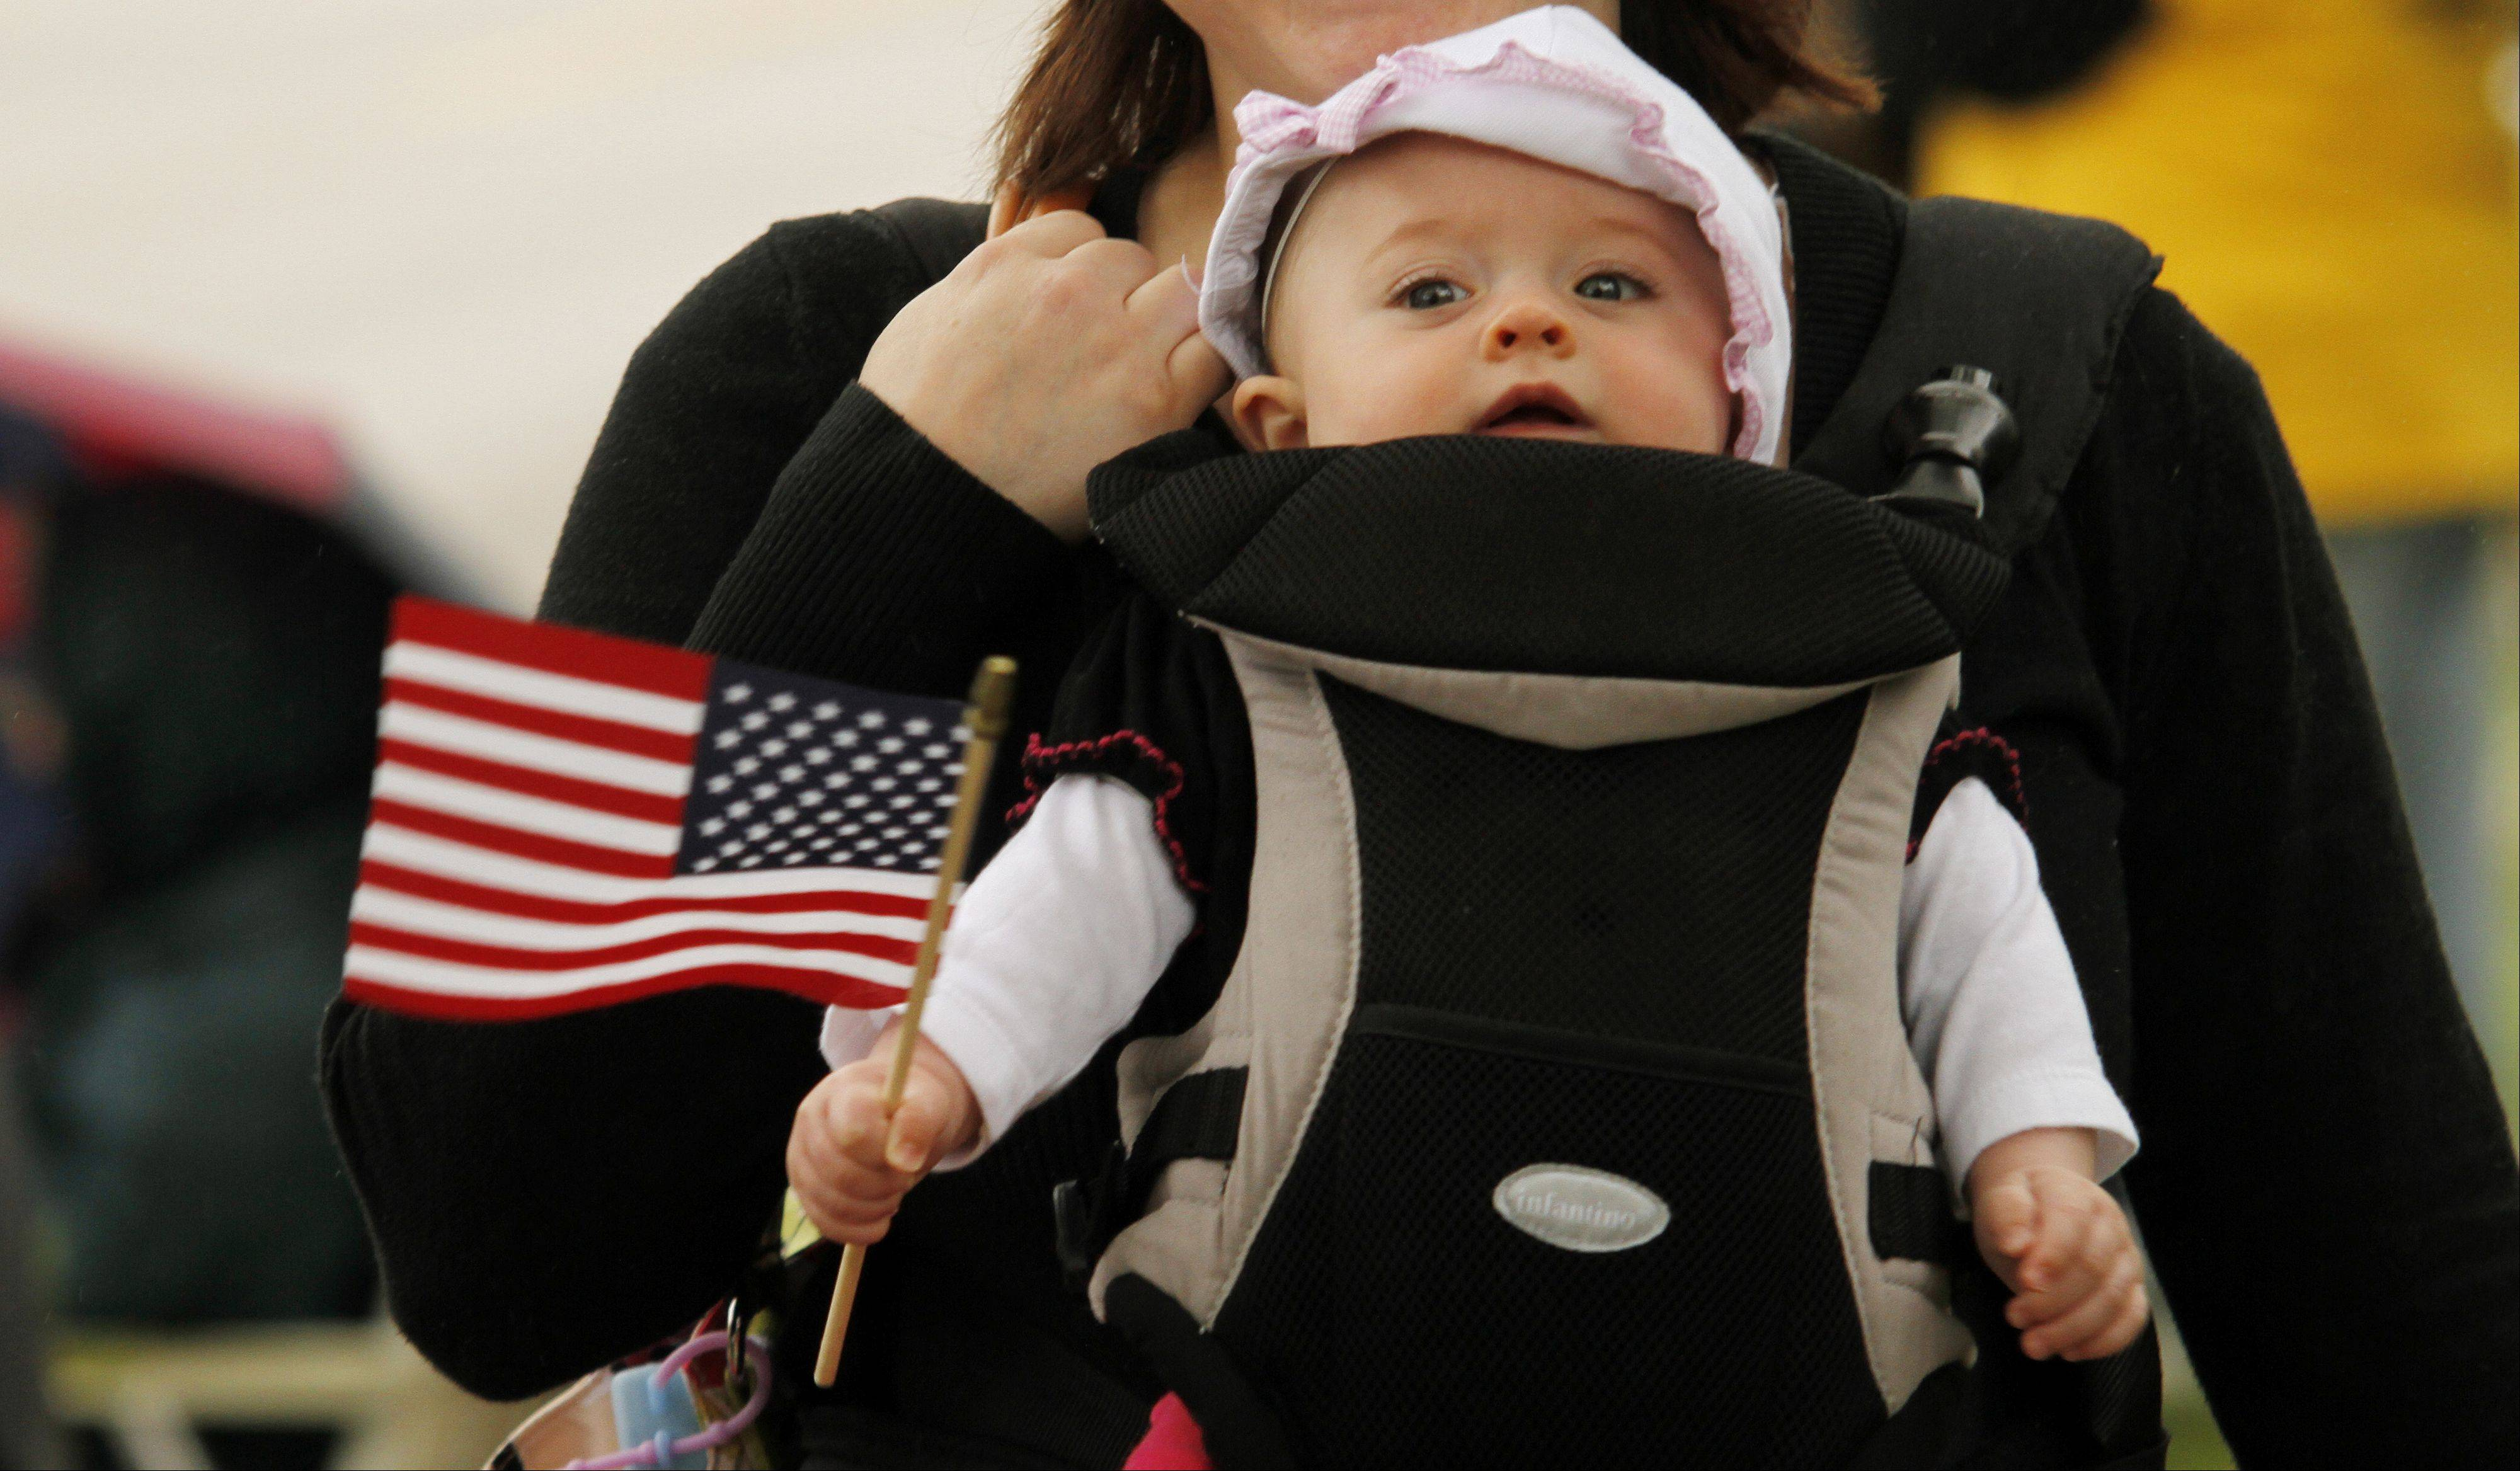 Cora Jacoby, six-months old, of Fond du Lac, Wis., waves her flag during the Memorial Day parade in West Bend on Monday, May 27, 2013.